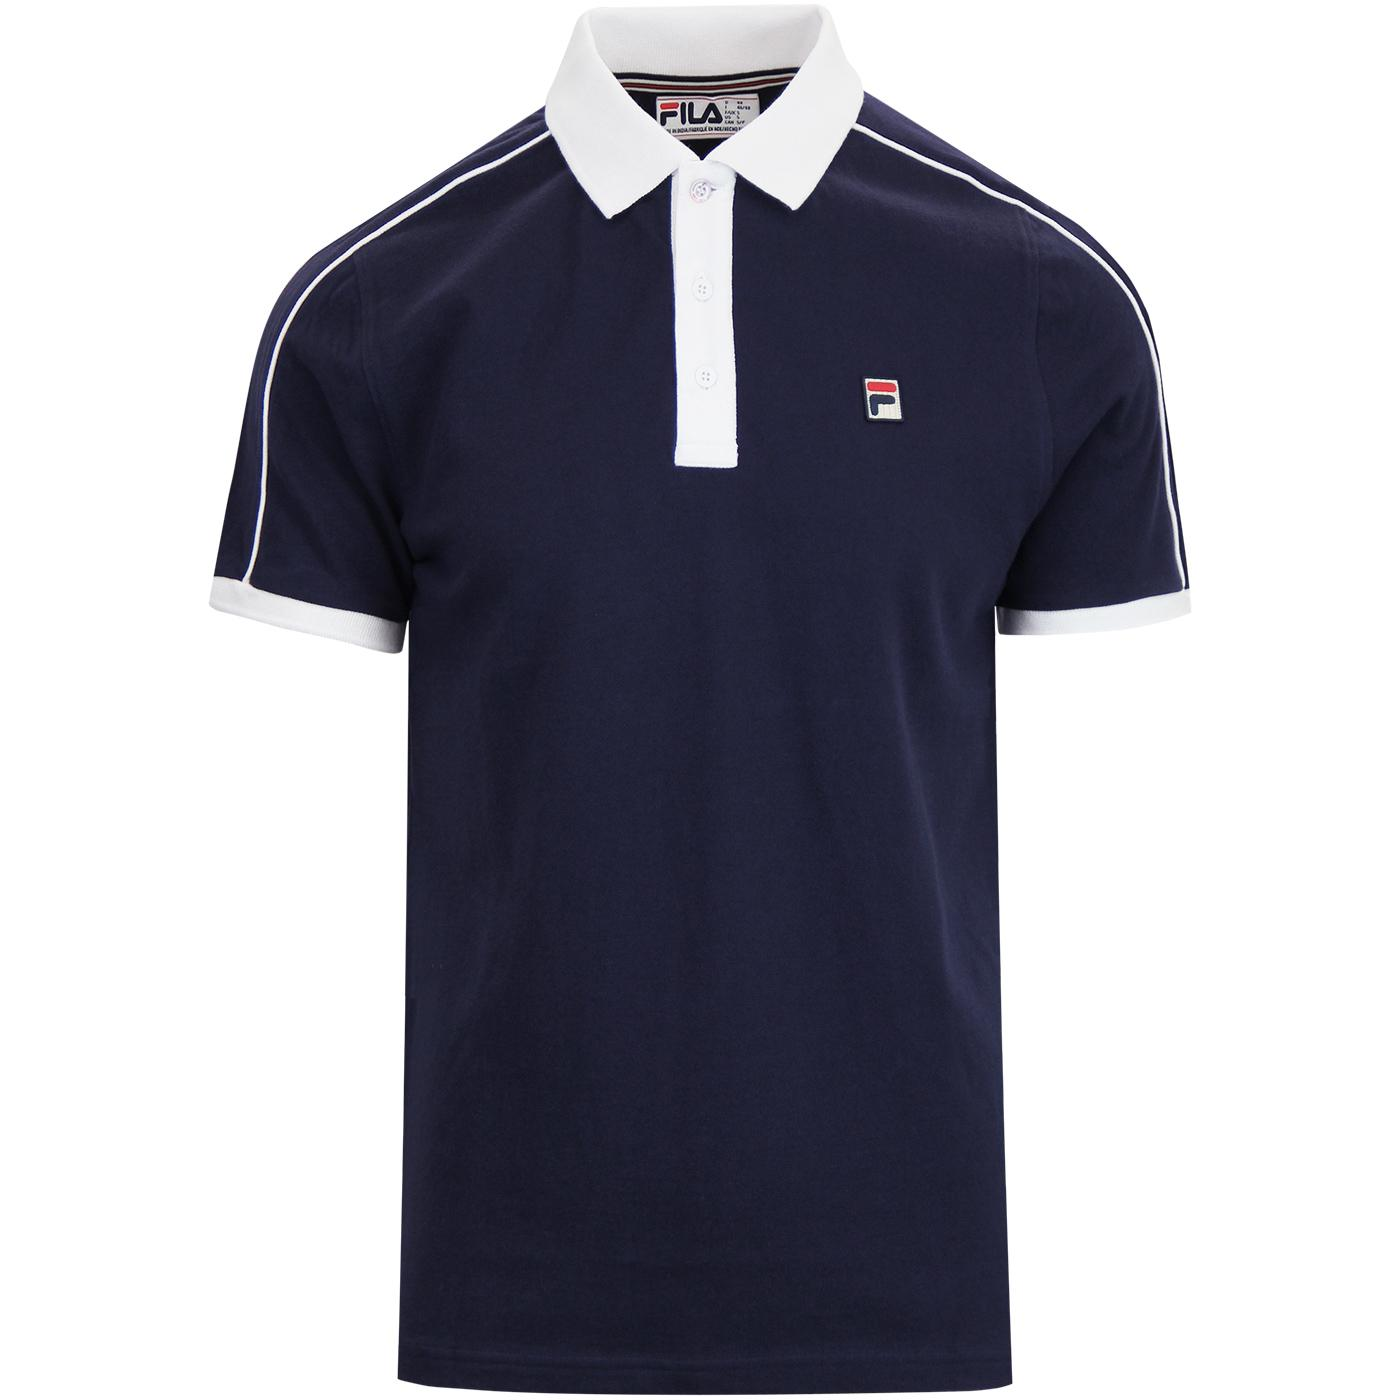 Klein FILA VINTAGE Men's Mod Piped Trim Polo Top